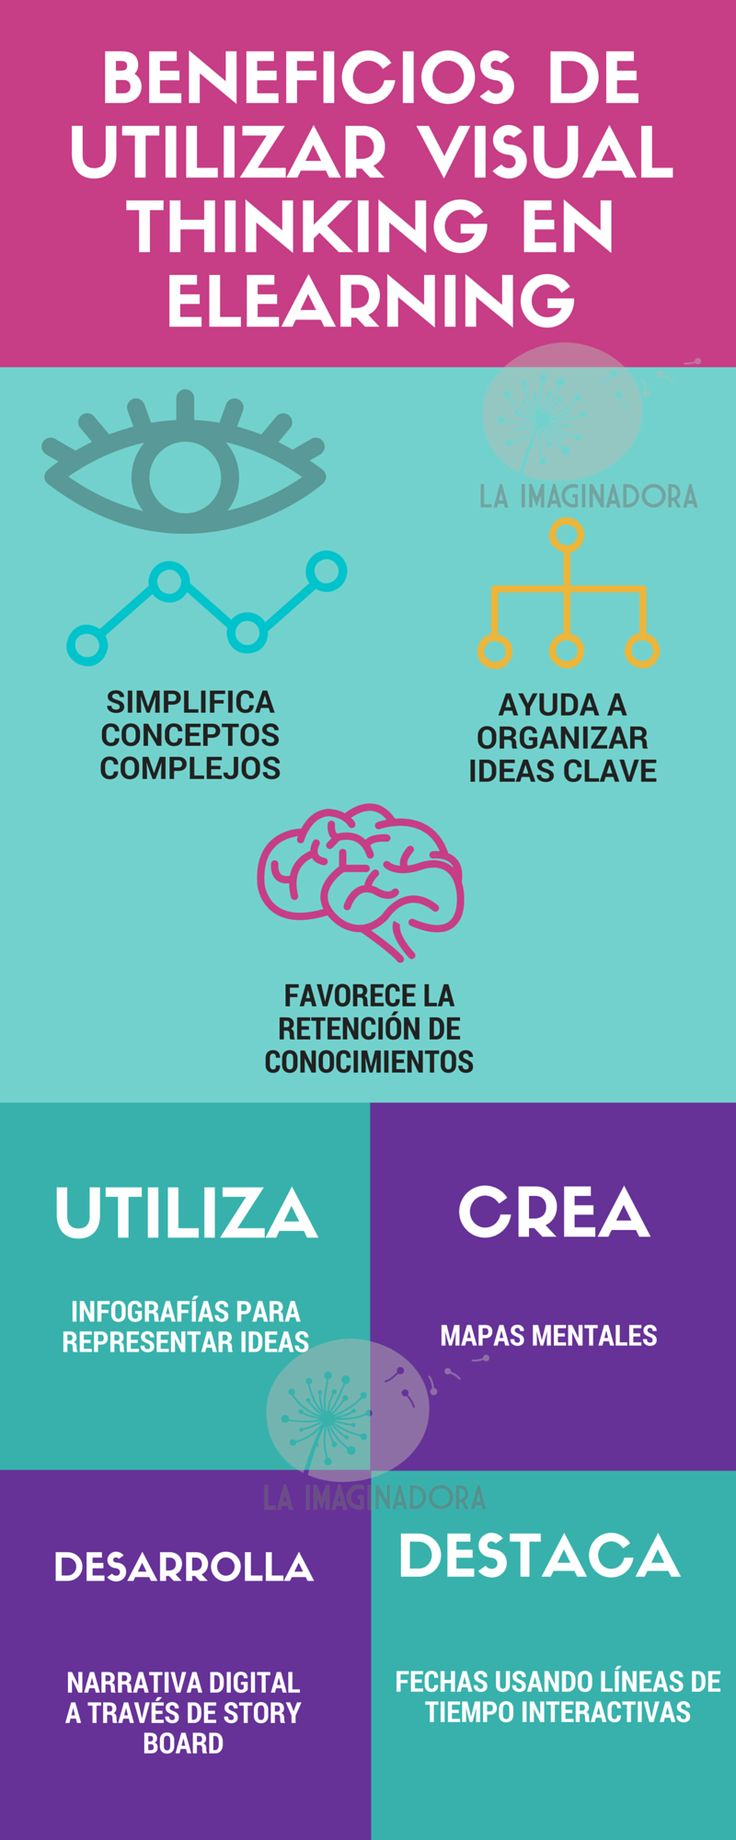 BENEFICIOS DE UTILIZAR VISUAL THINKING EN ELEARNING